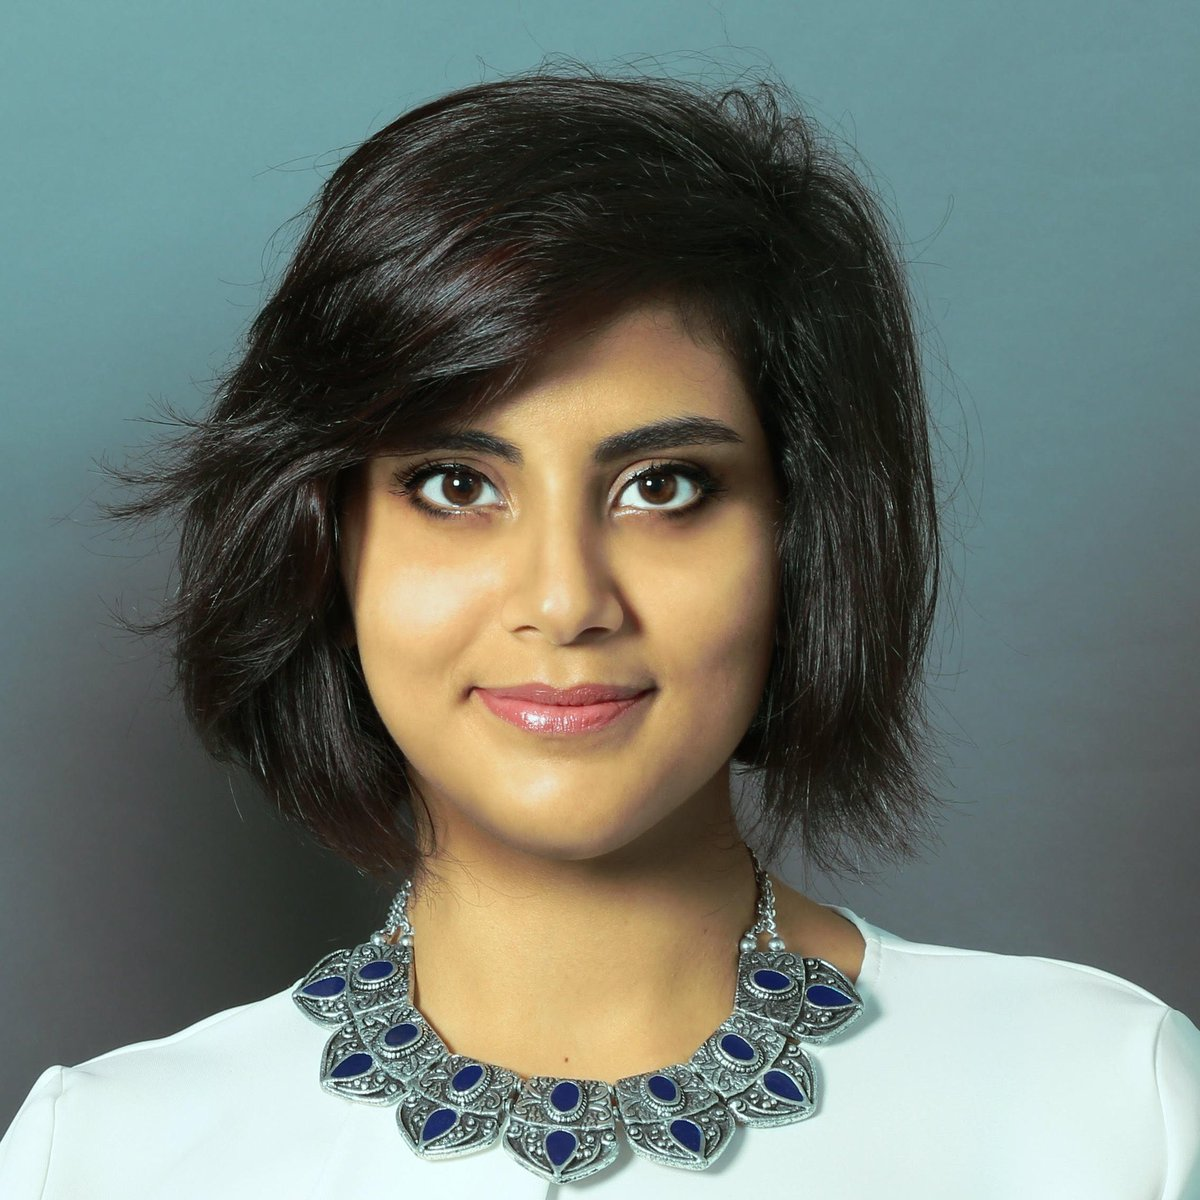 """Today is International Day to End Violence Against Women. It's also the day Women's Rights Activist @LoujainHathloul stands trial in Saudi Arabia for the """"crime"""" of wanting equality & basic rights. Leading up to her trial Loujain was tortured & assaulted in Bonesaw MBS' dungeons. https://t.co/ga5HFEODig"""